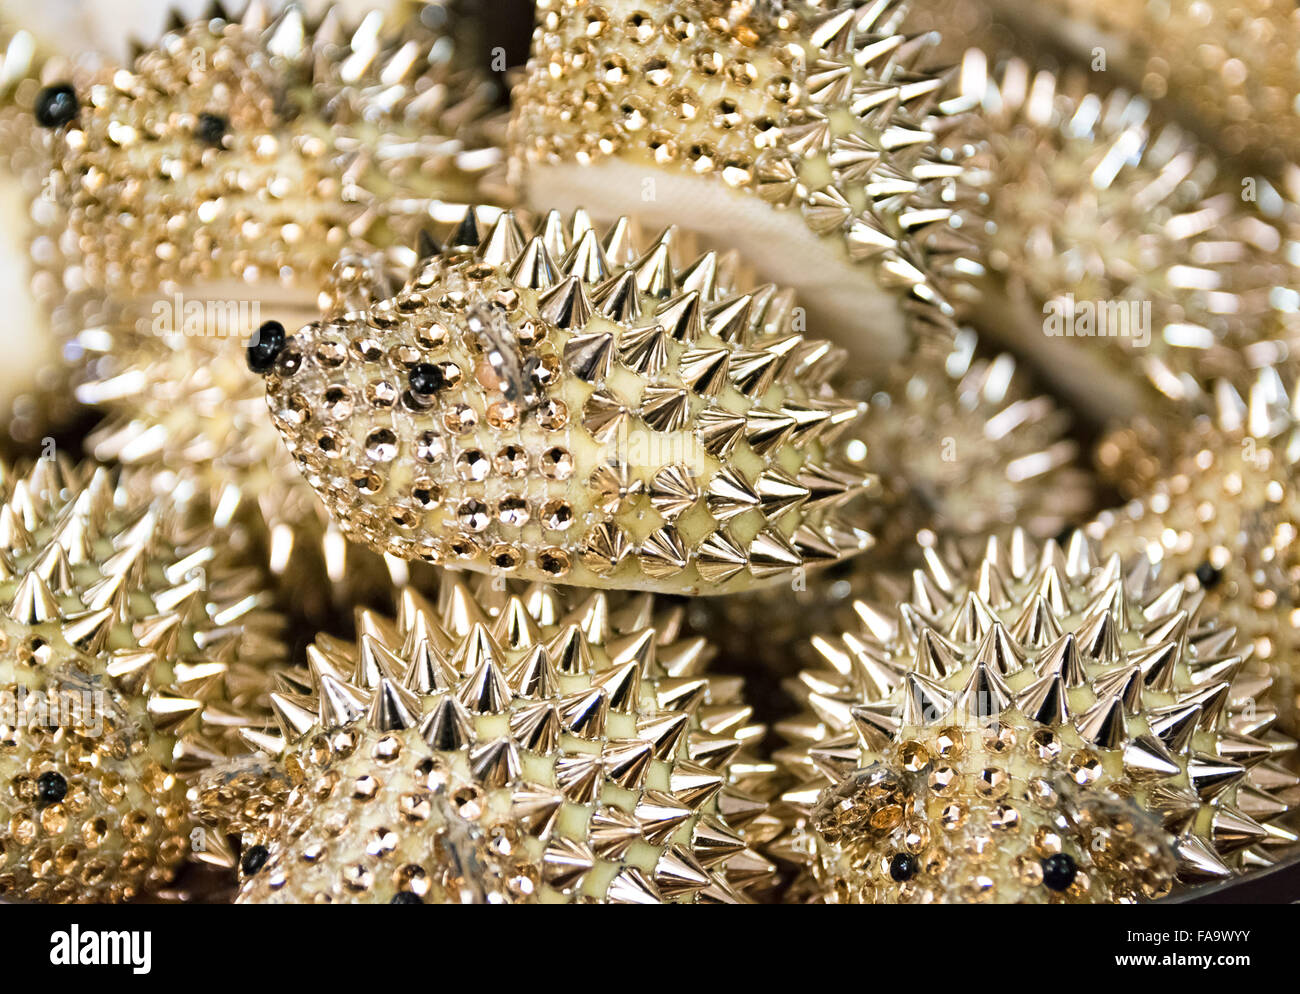 Background formed by golden hedgehogs to use as a paperweight. - Stock Image